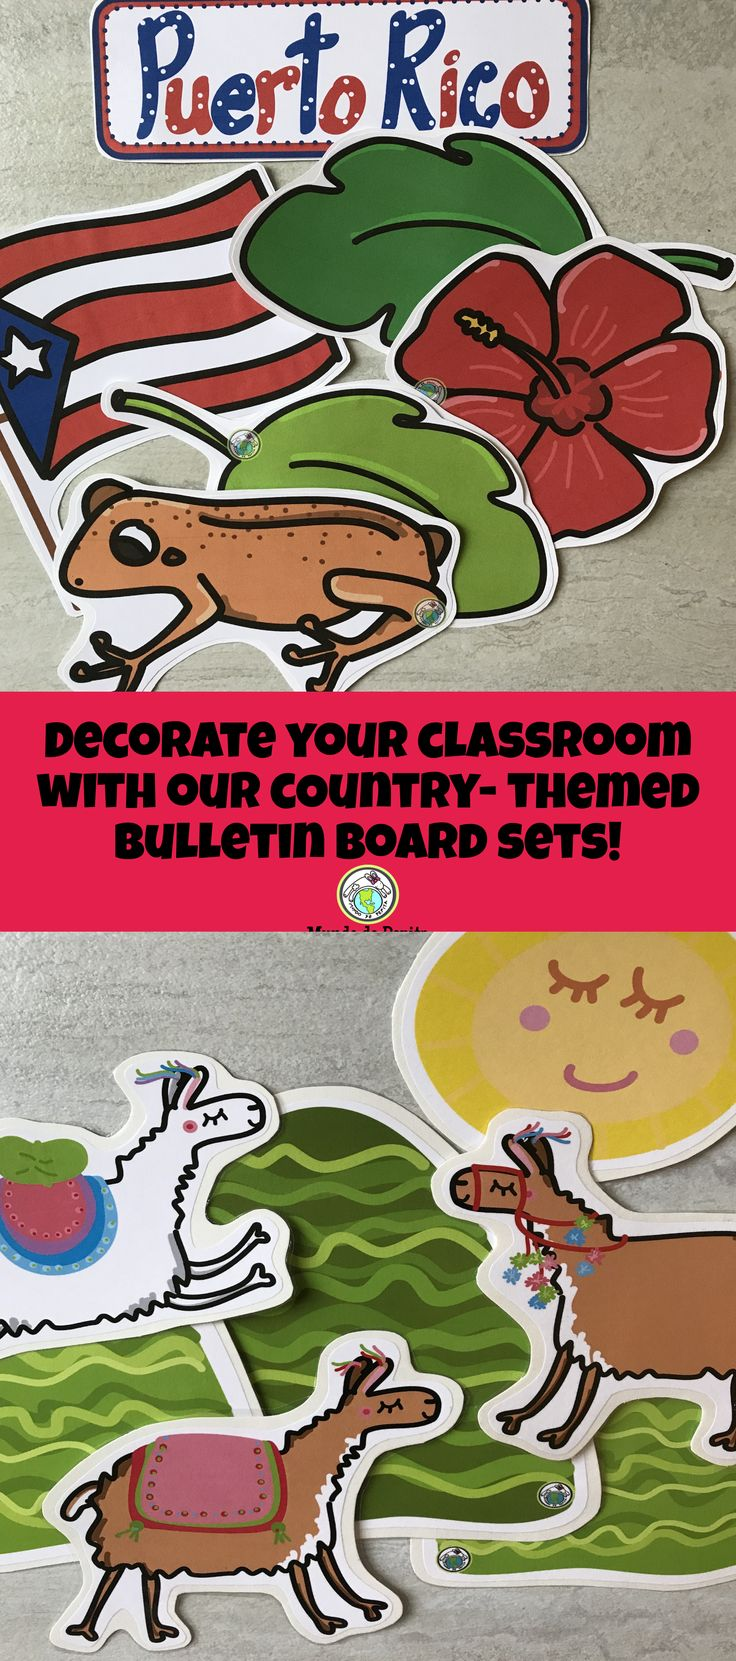 Decorate your Spanish classroom with our Country themed Bulletin Board Kits! Great for all grade levels! Mundo de Pepita, Resources for Teaching Spanish to Children